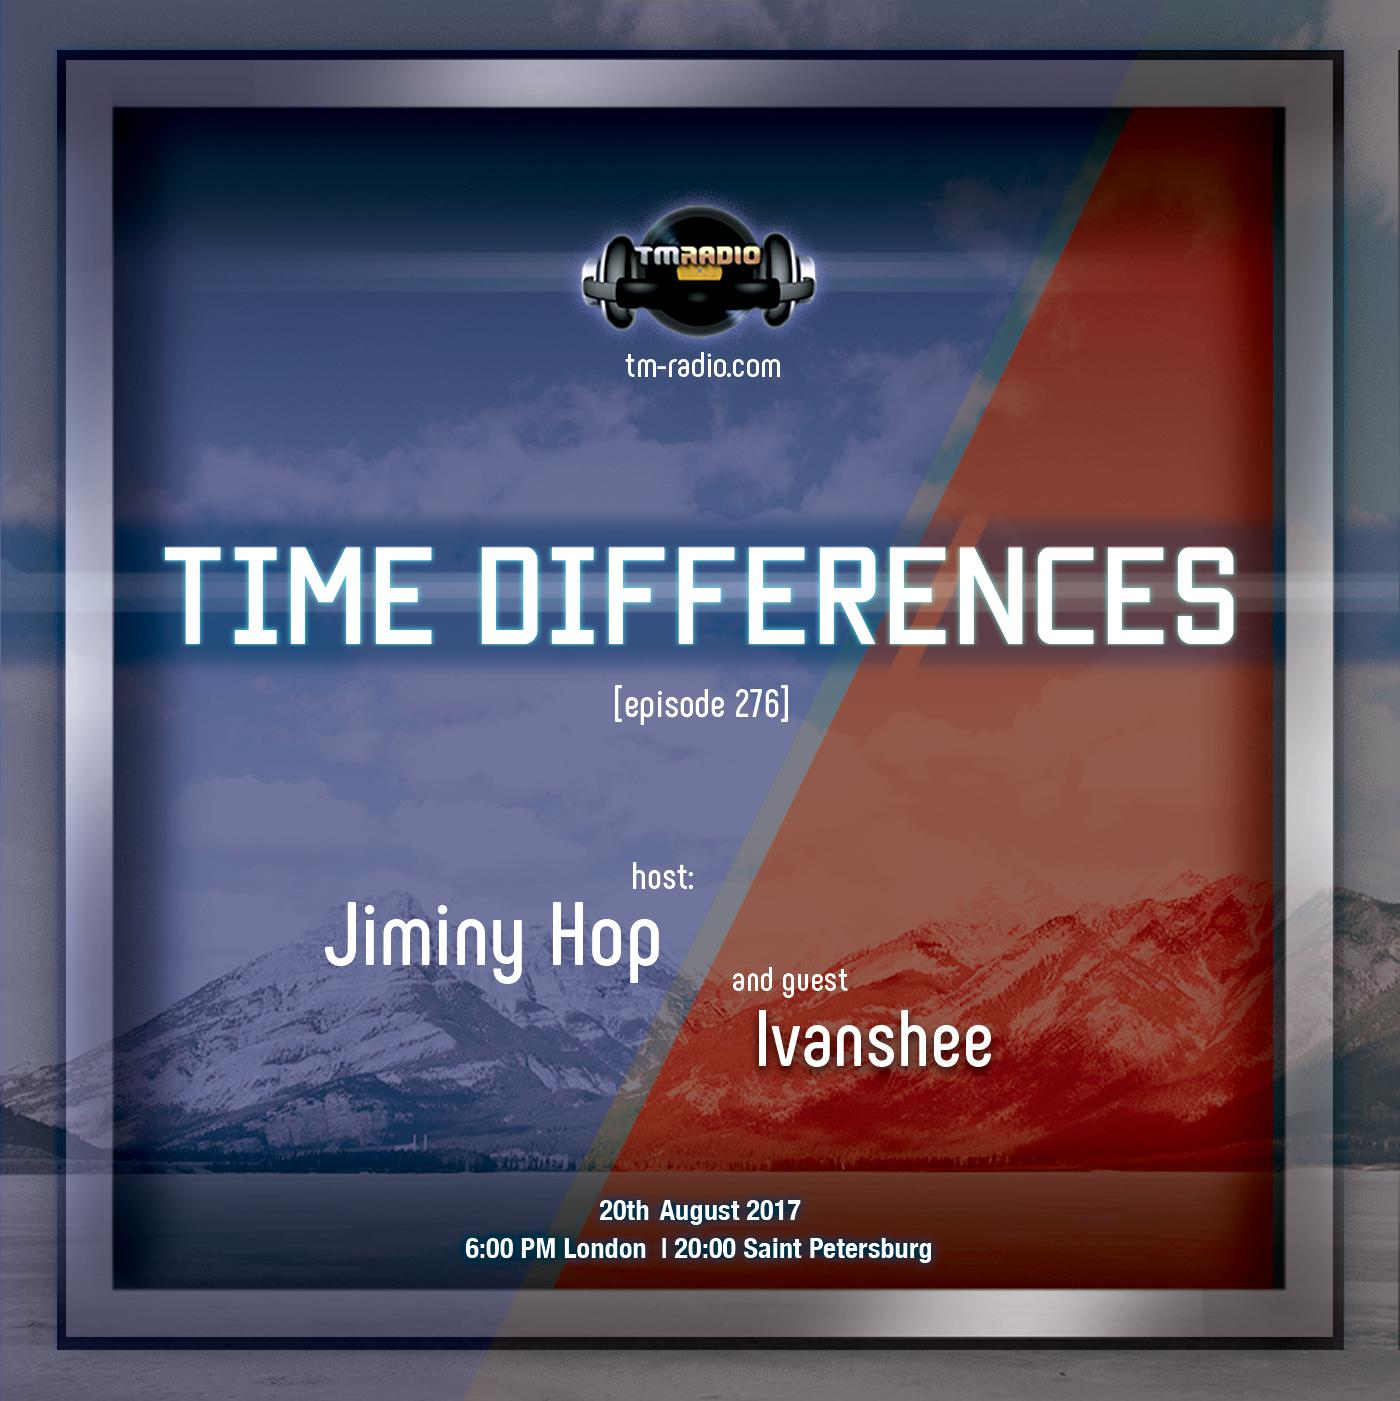 download → Jiminy Hop, Ivanshee - Time Differences 276 on TM Radio - 20-Aug-2017